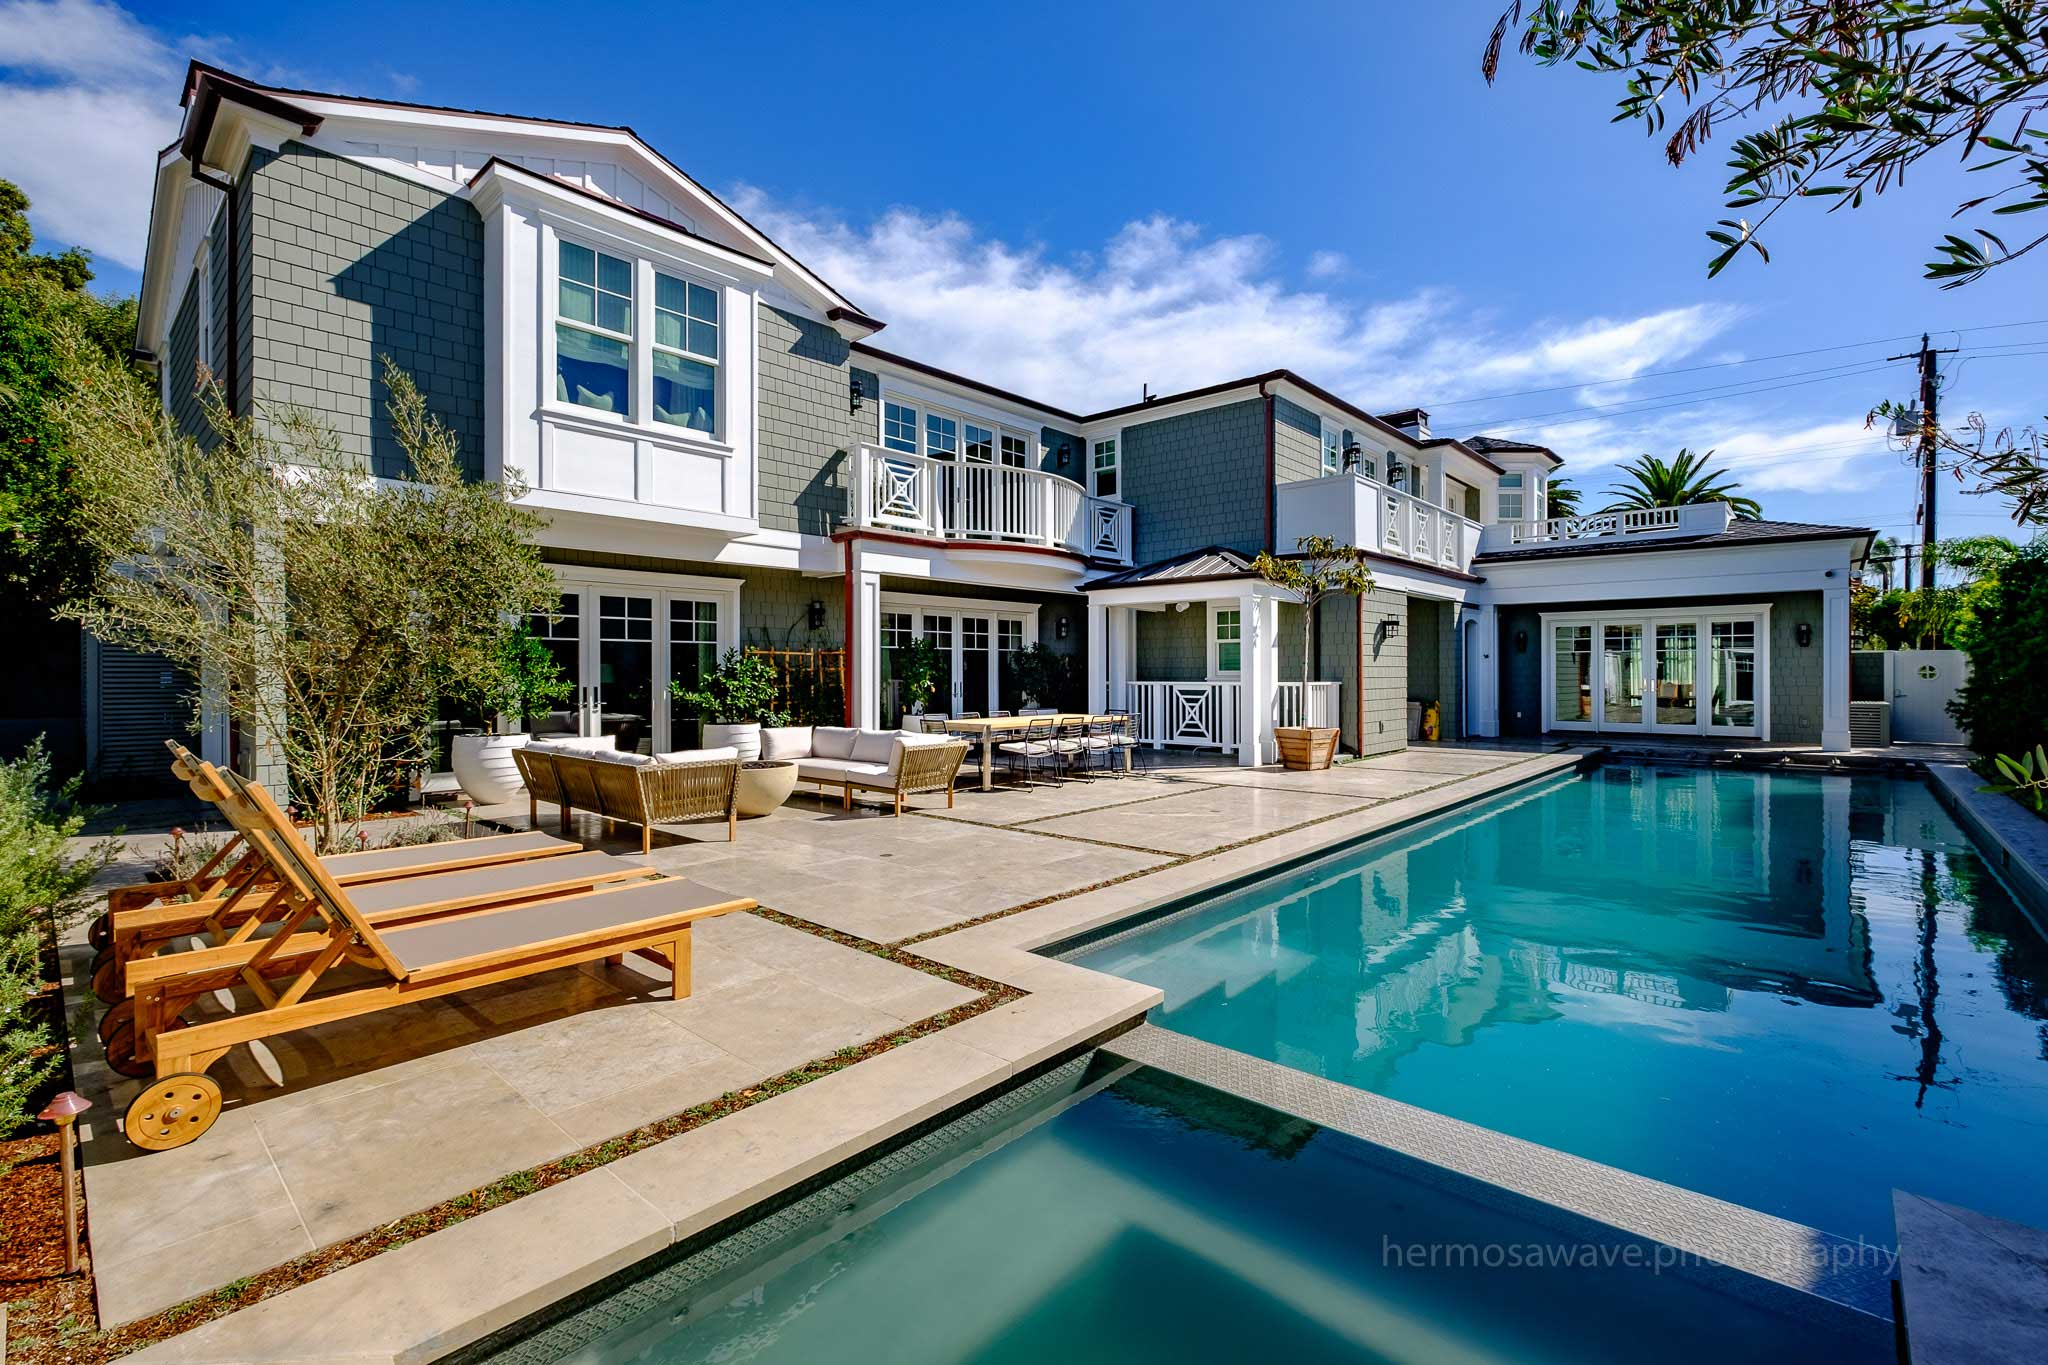 Pool is the central focus of this Manhattan Beach home.